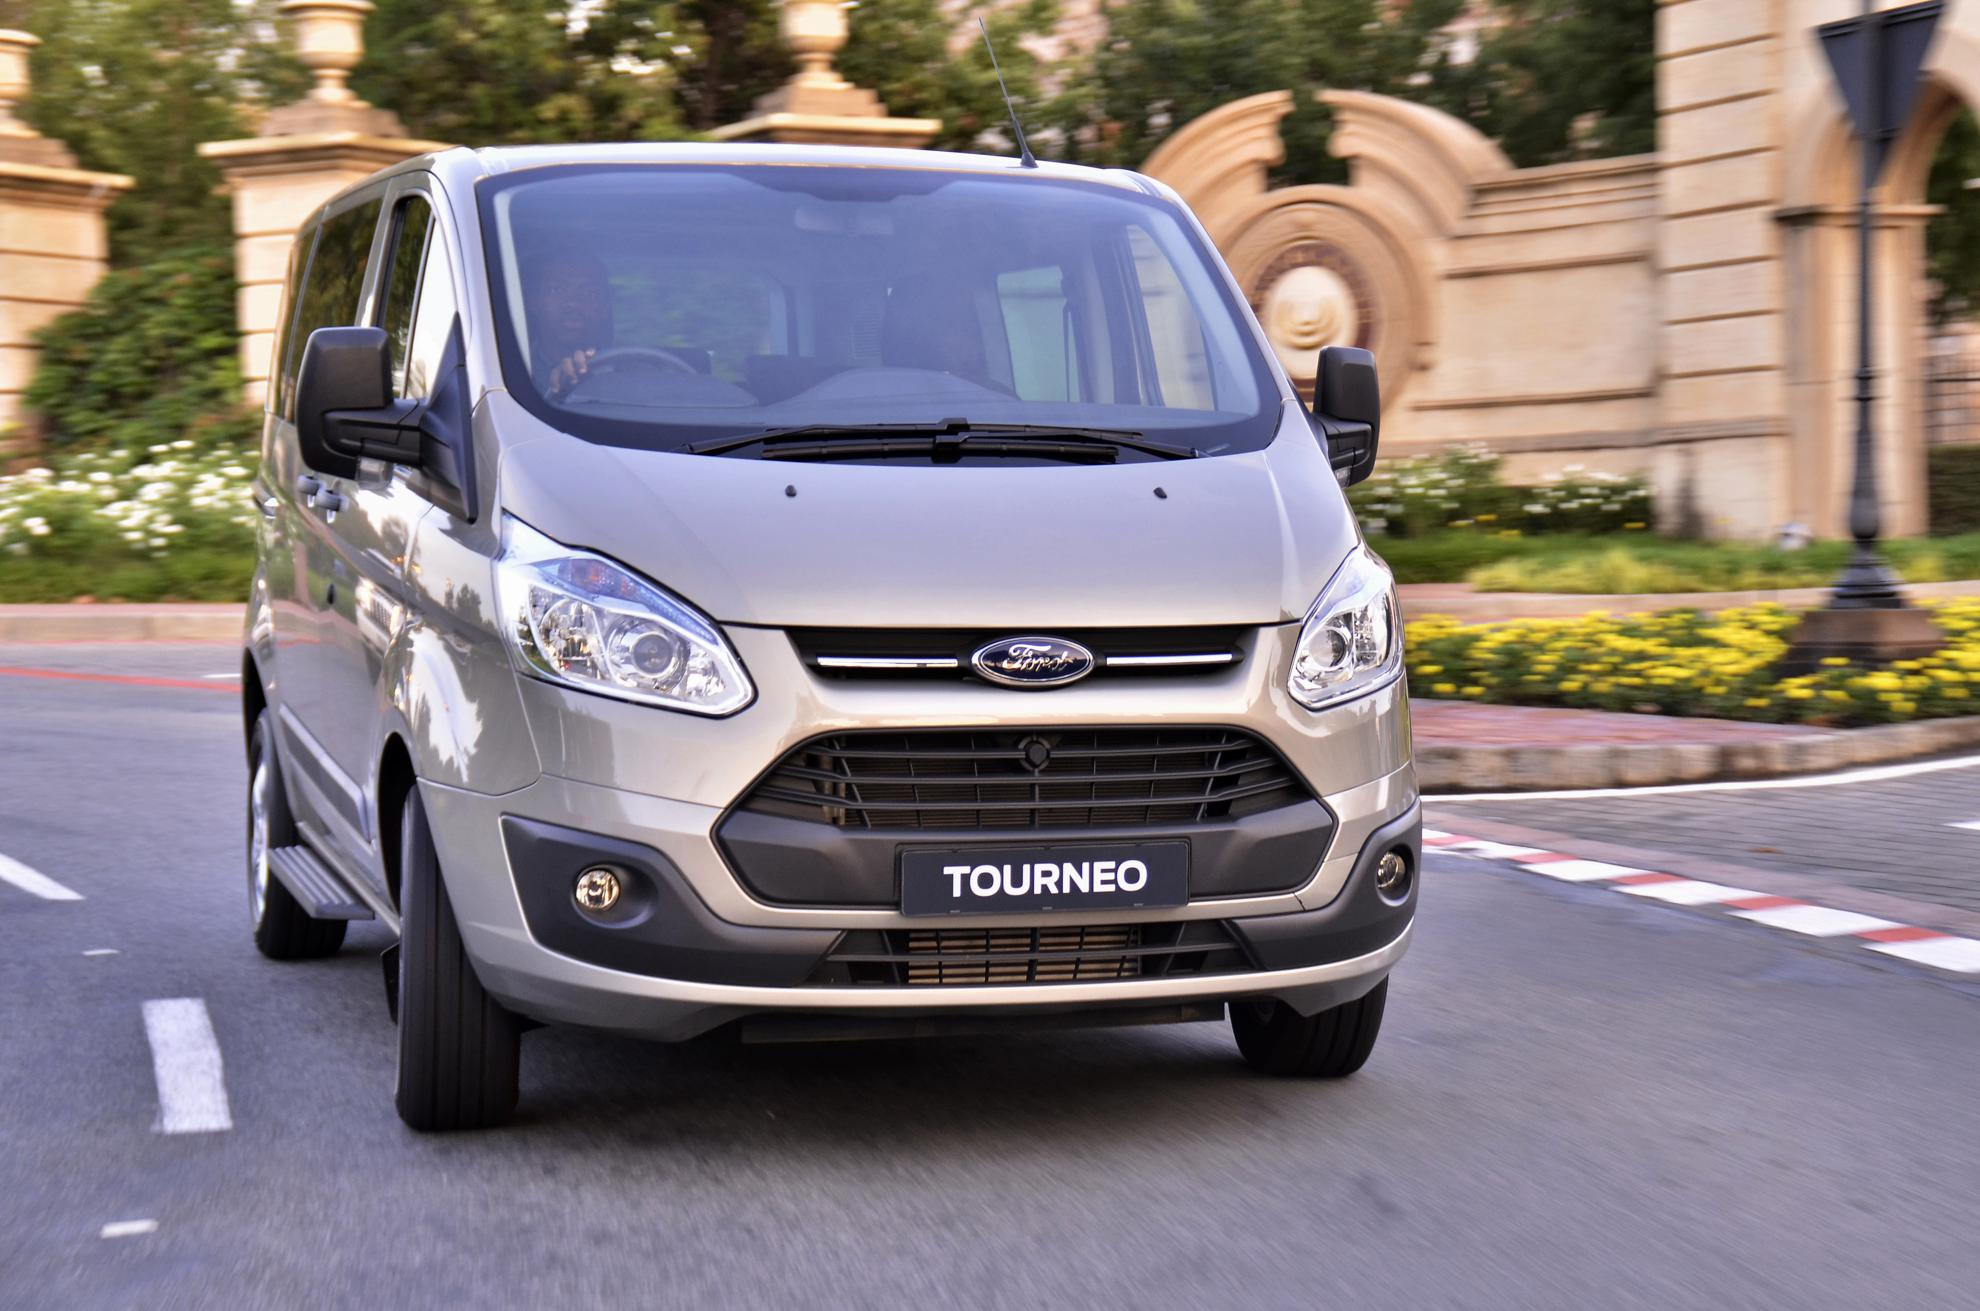 Ford Tourneo 2013 South Africa